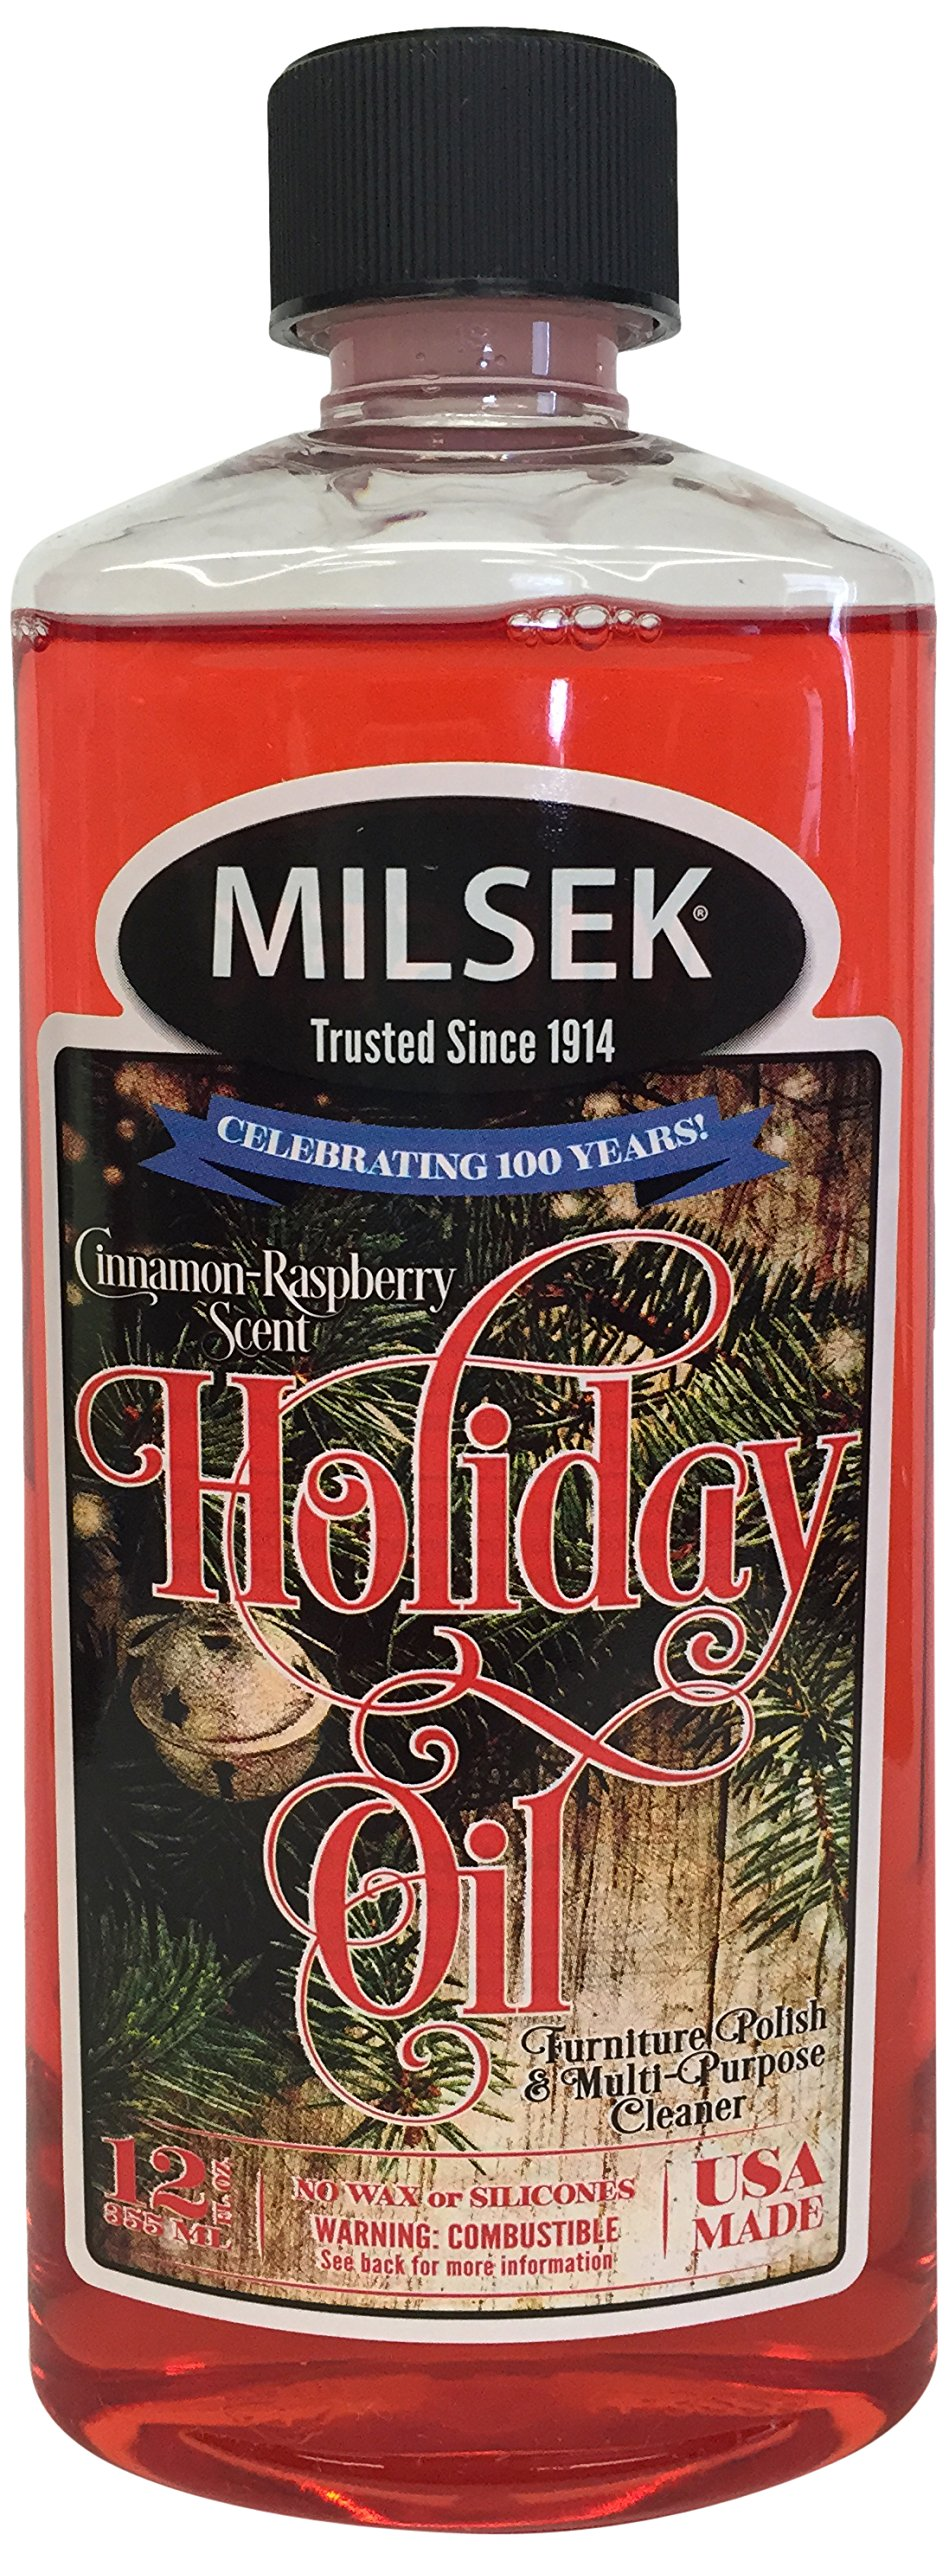 Milsek Furniture Polish and Cleaner with Cinnamon-Raspberry Scent (Holiday Oil), 12-Ounce, Pack of 12, HO-12-12PL by Milsek (Image #1)